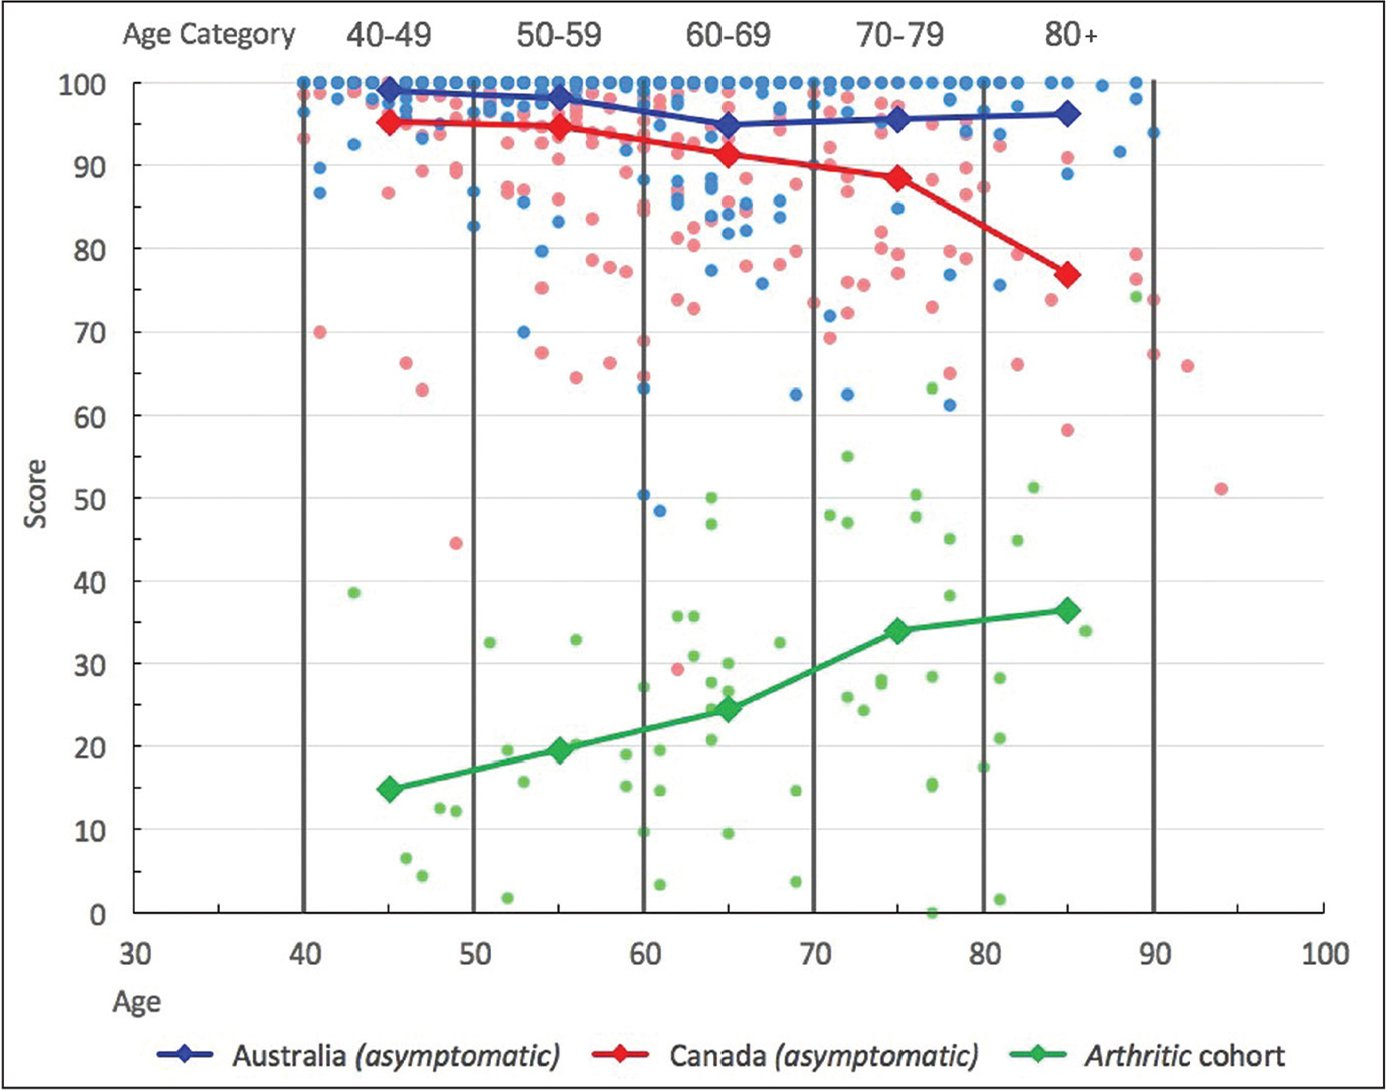 Scattergram showing Hip Disability and Osteoarthritis Outcome Score for each age group among asymptomatic Australian participants (blue), asymptomatic Canadian participants (red), and arthritic cohort (green). Higher scores indicate better outcomes for symptoms, pain, function, and quality of life.